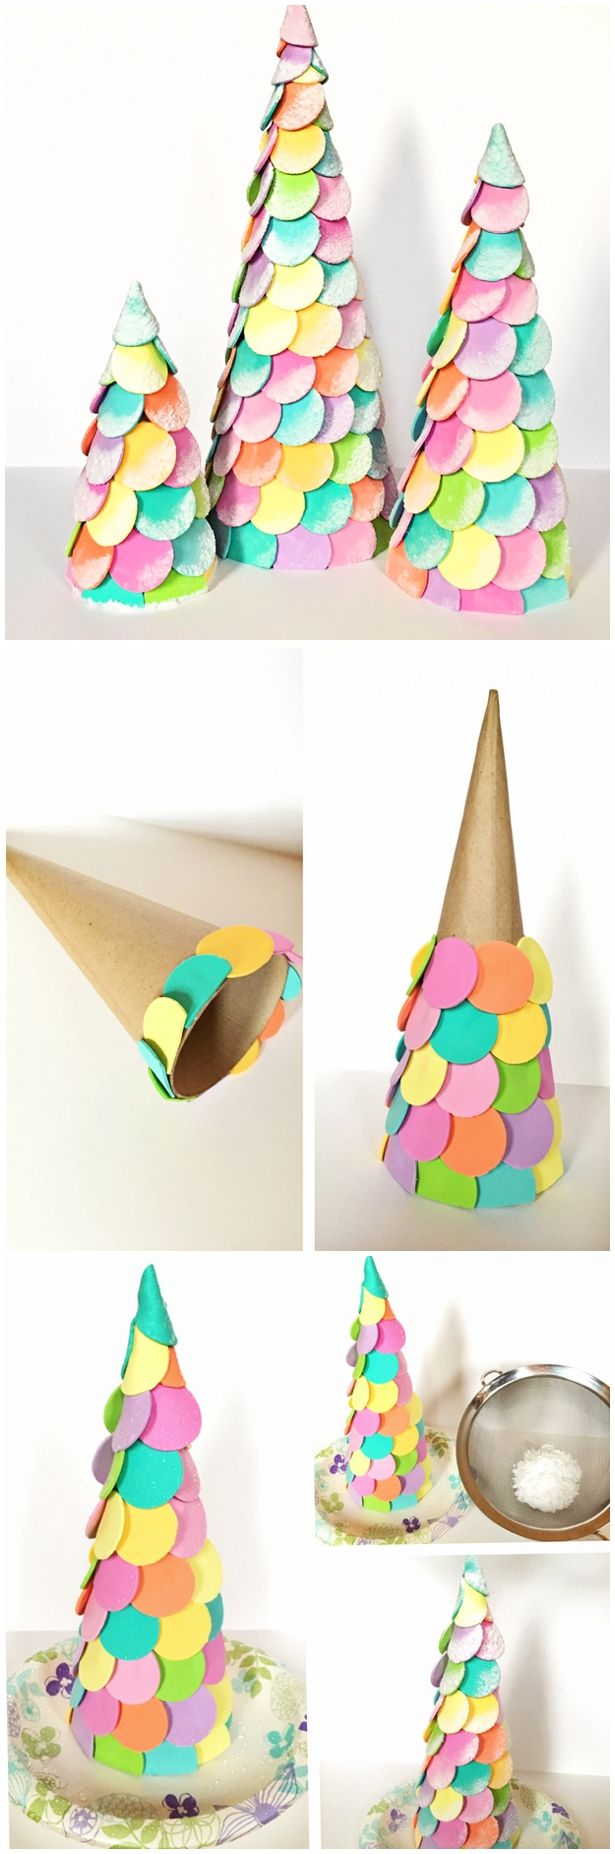 DIY CANDY CHRISTMAS CONE TREES | Crafts for Kids | Christmas, Crafts ...